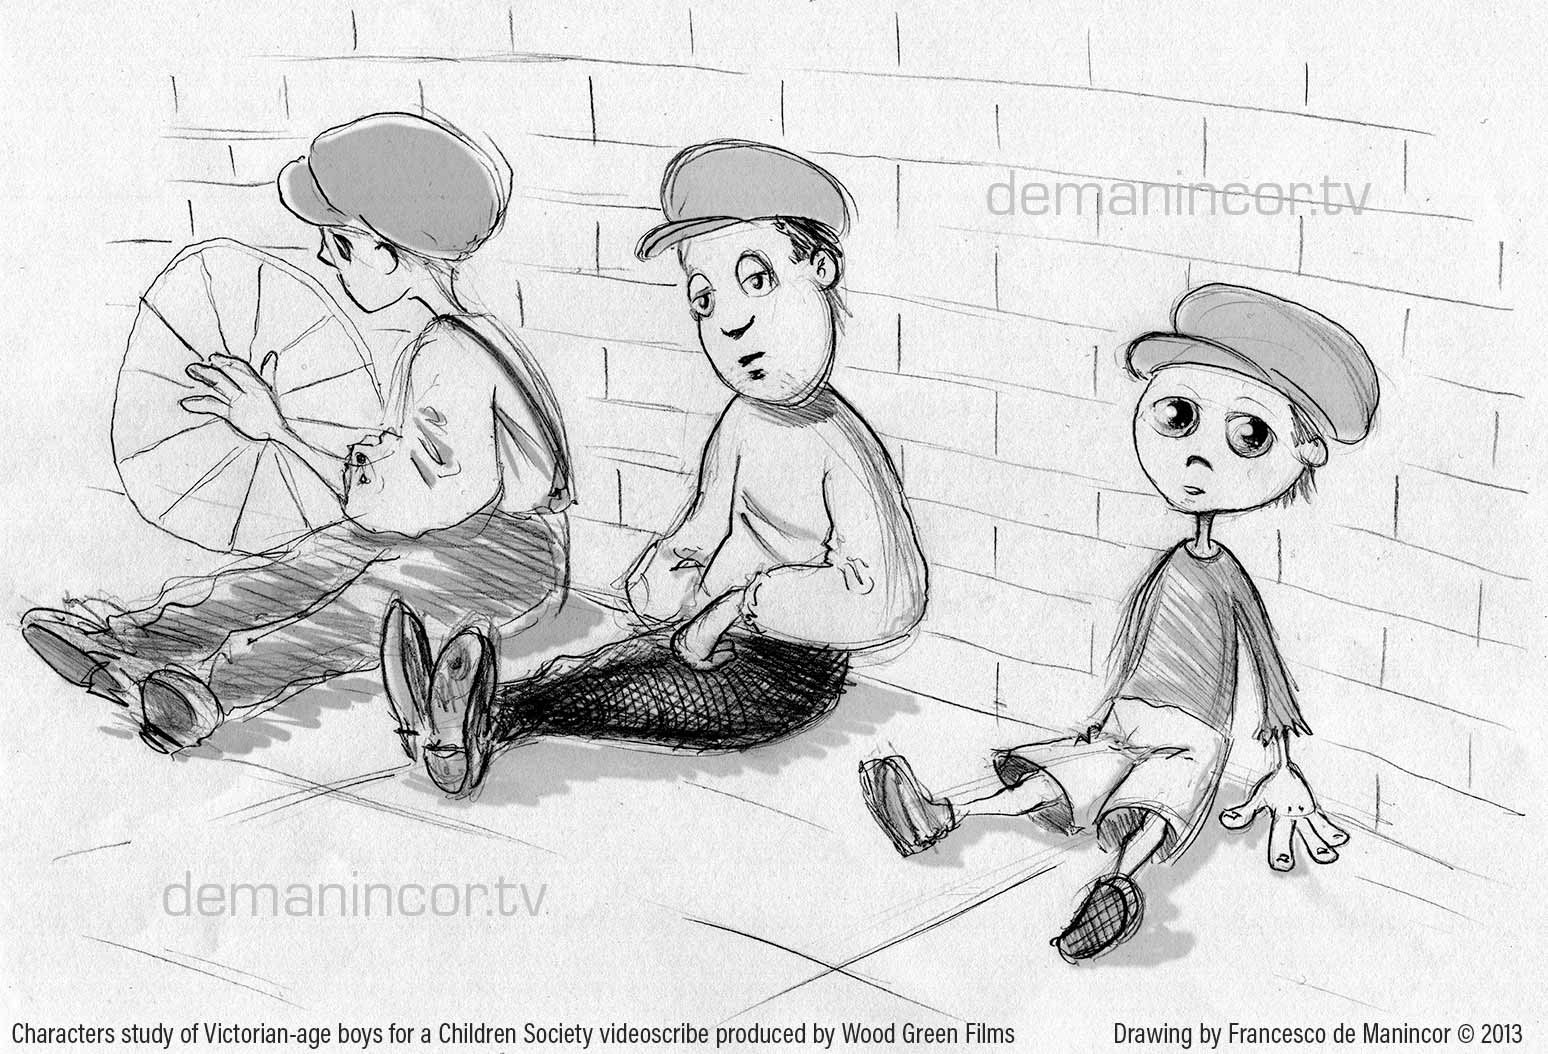 Characters study of Victorian-age boys for a Children Society project